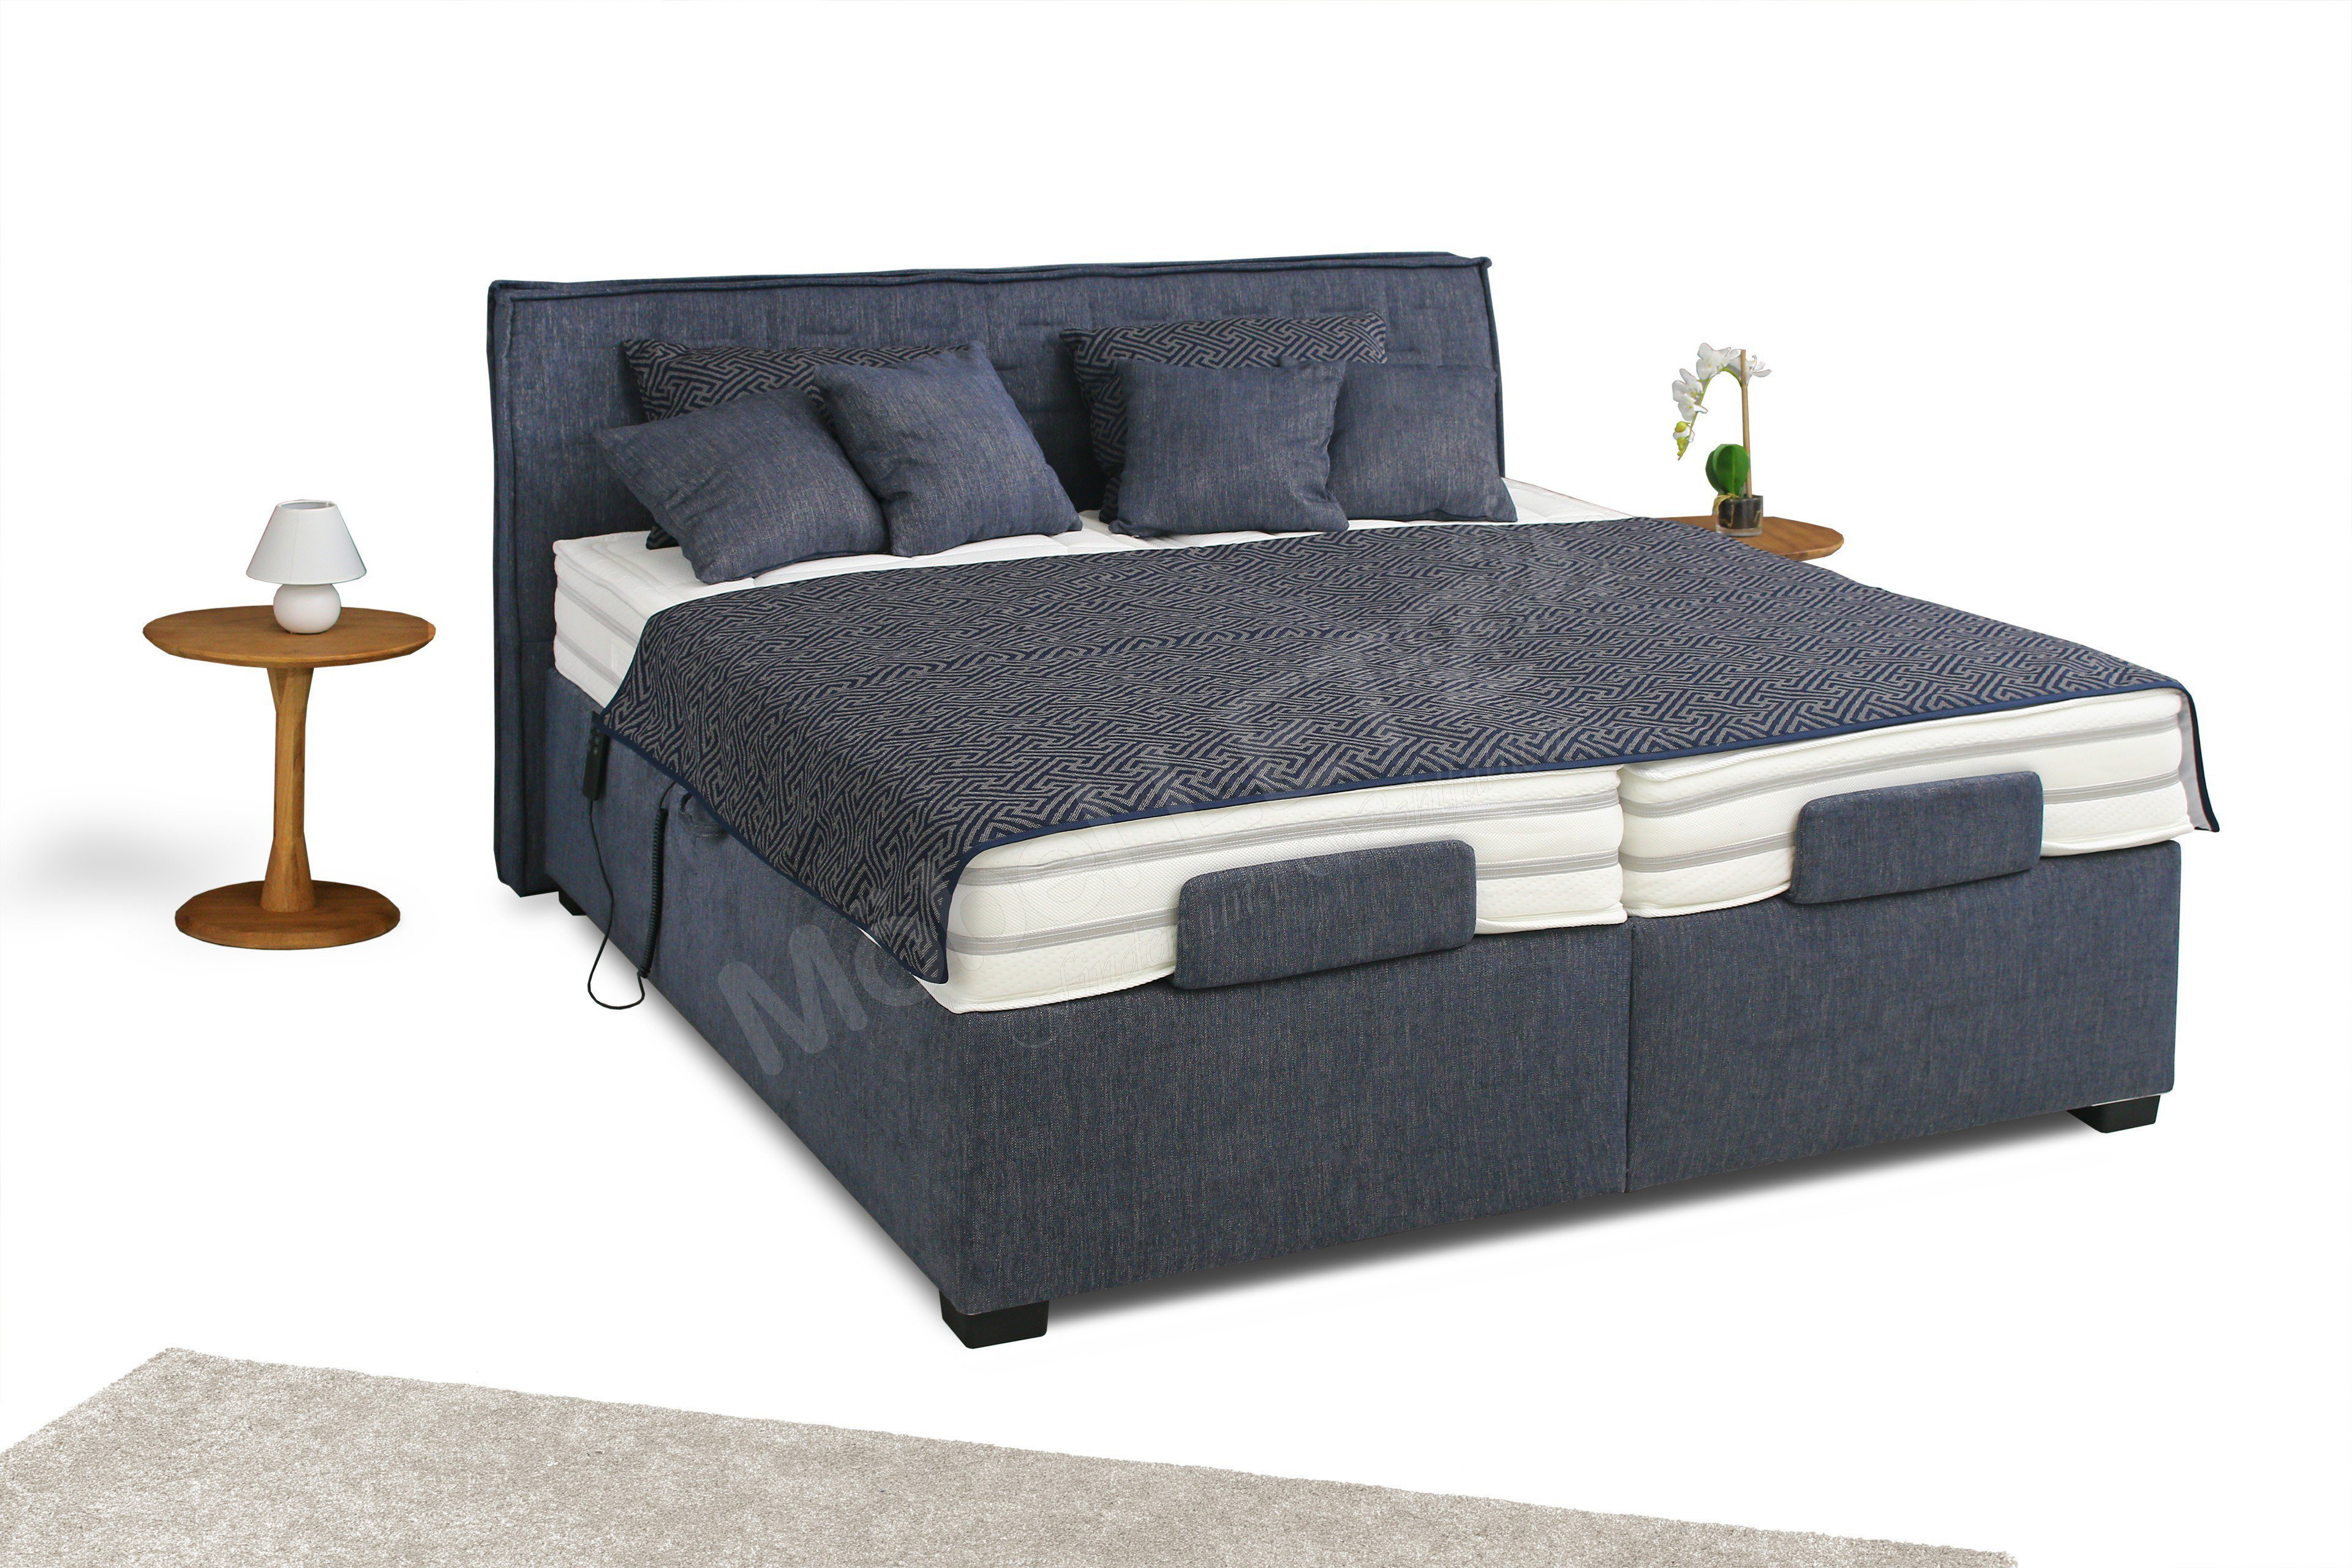 boxspringbett belcanto enja motor von oschmann in atlantic blau m bel letz ihr online shop. Black Bedroom Furniture Sets. Home Design Ideas